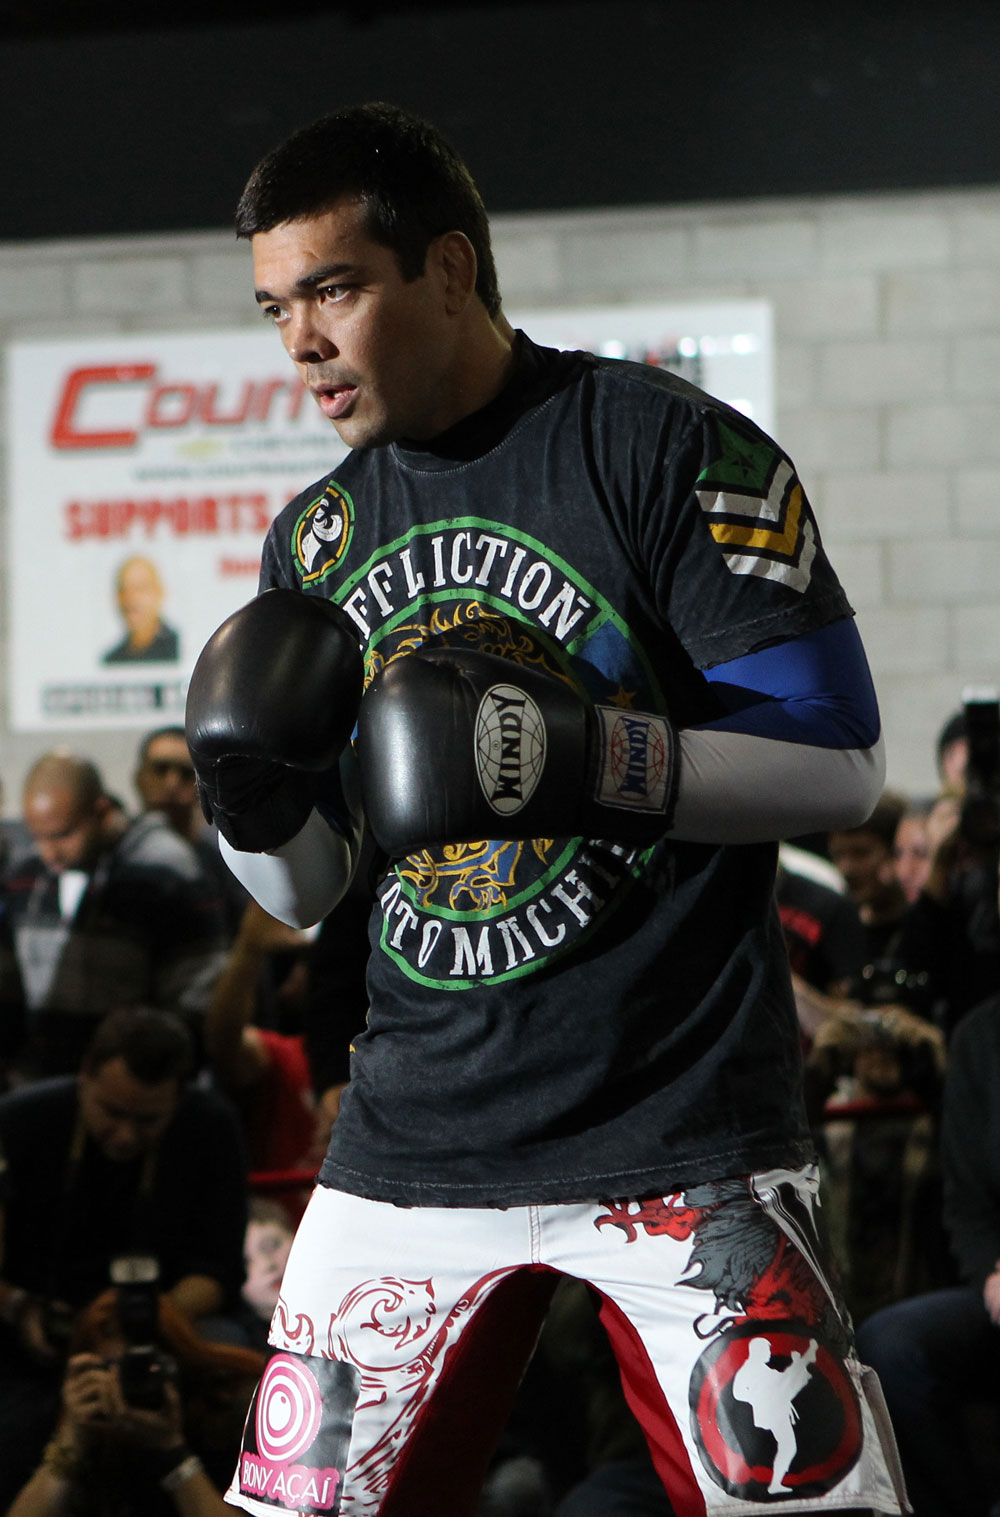 UFC light heavyweight Lyoto Machida